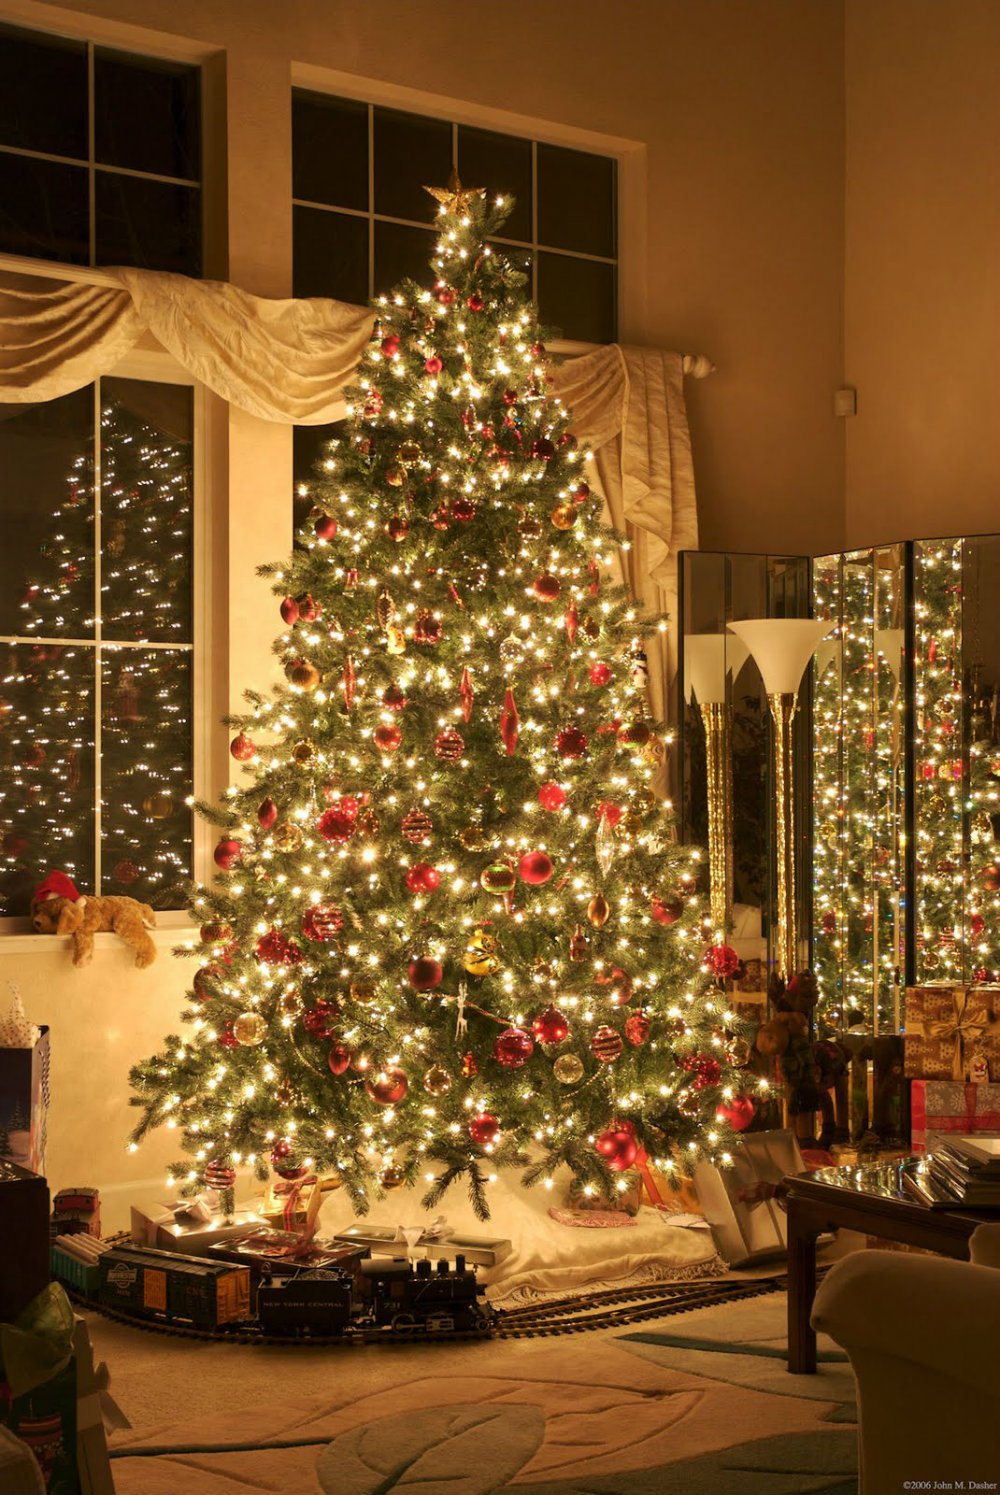 7 Chic Christmas Decorations for The Most Memorable Holiday 06 chic christmas decorations 7 Chic Christmas Decorations for The Most Memorable Holiday 7 Chic Christmas Decorations for The Most Unforgettable Holiday 06